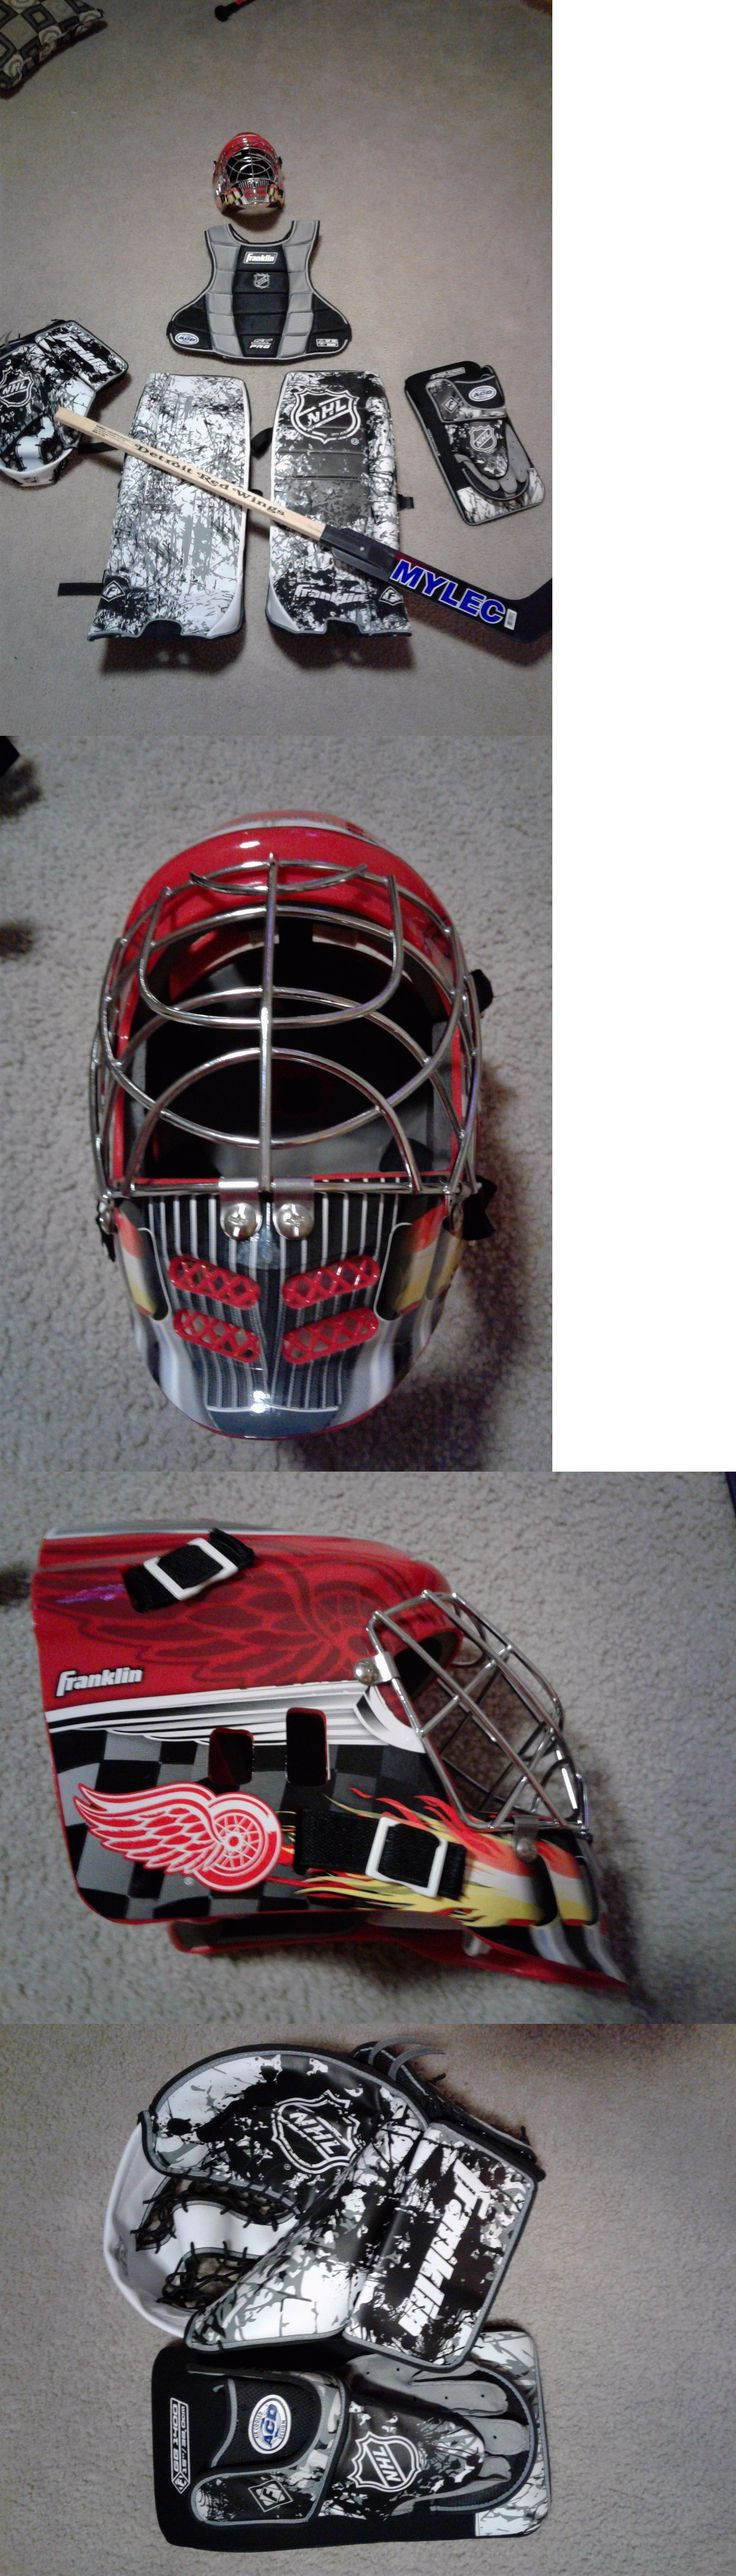 Other Hockey Goalie Equipment 79765: Franklin Goalie Equipment - Youth BUY IT NOW ONLY: $100.0